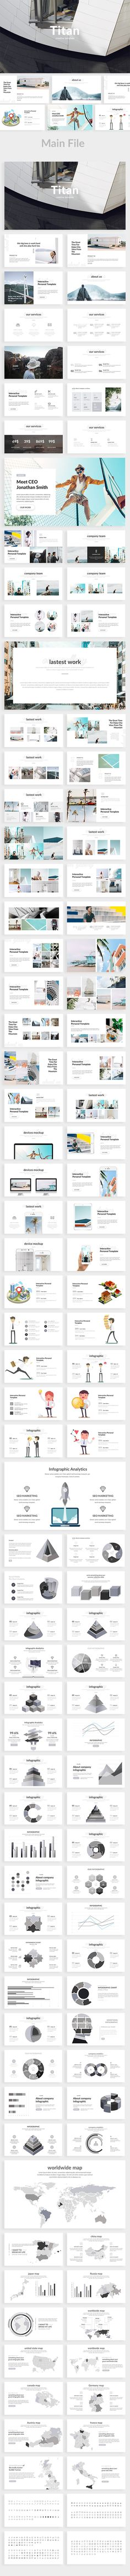 Titan Creative Powerpoint Template — Powerpoint PPT #proposal • Available here ➝ https://graphicriver.net/item/titan-creative-powerpoint-template/20734898?ref=pxcr